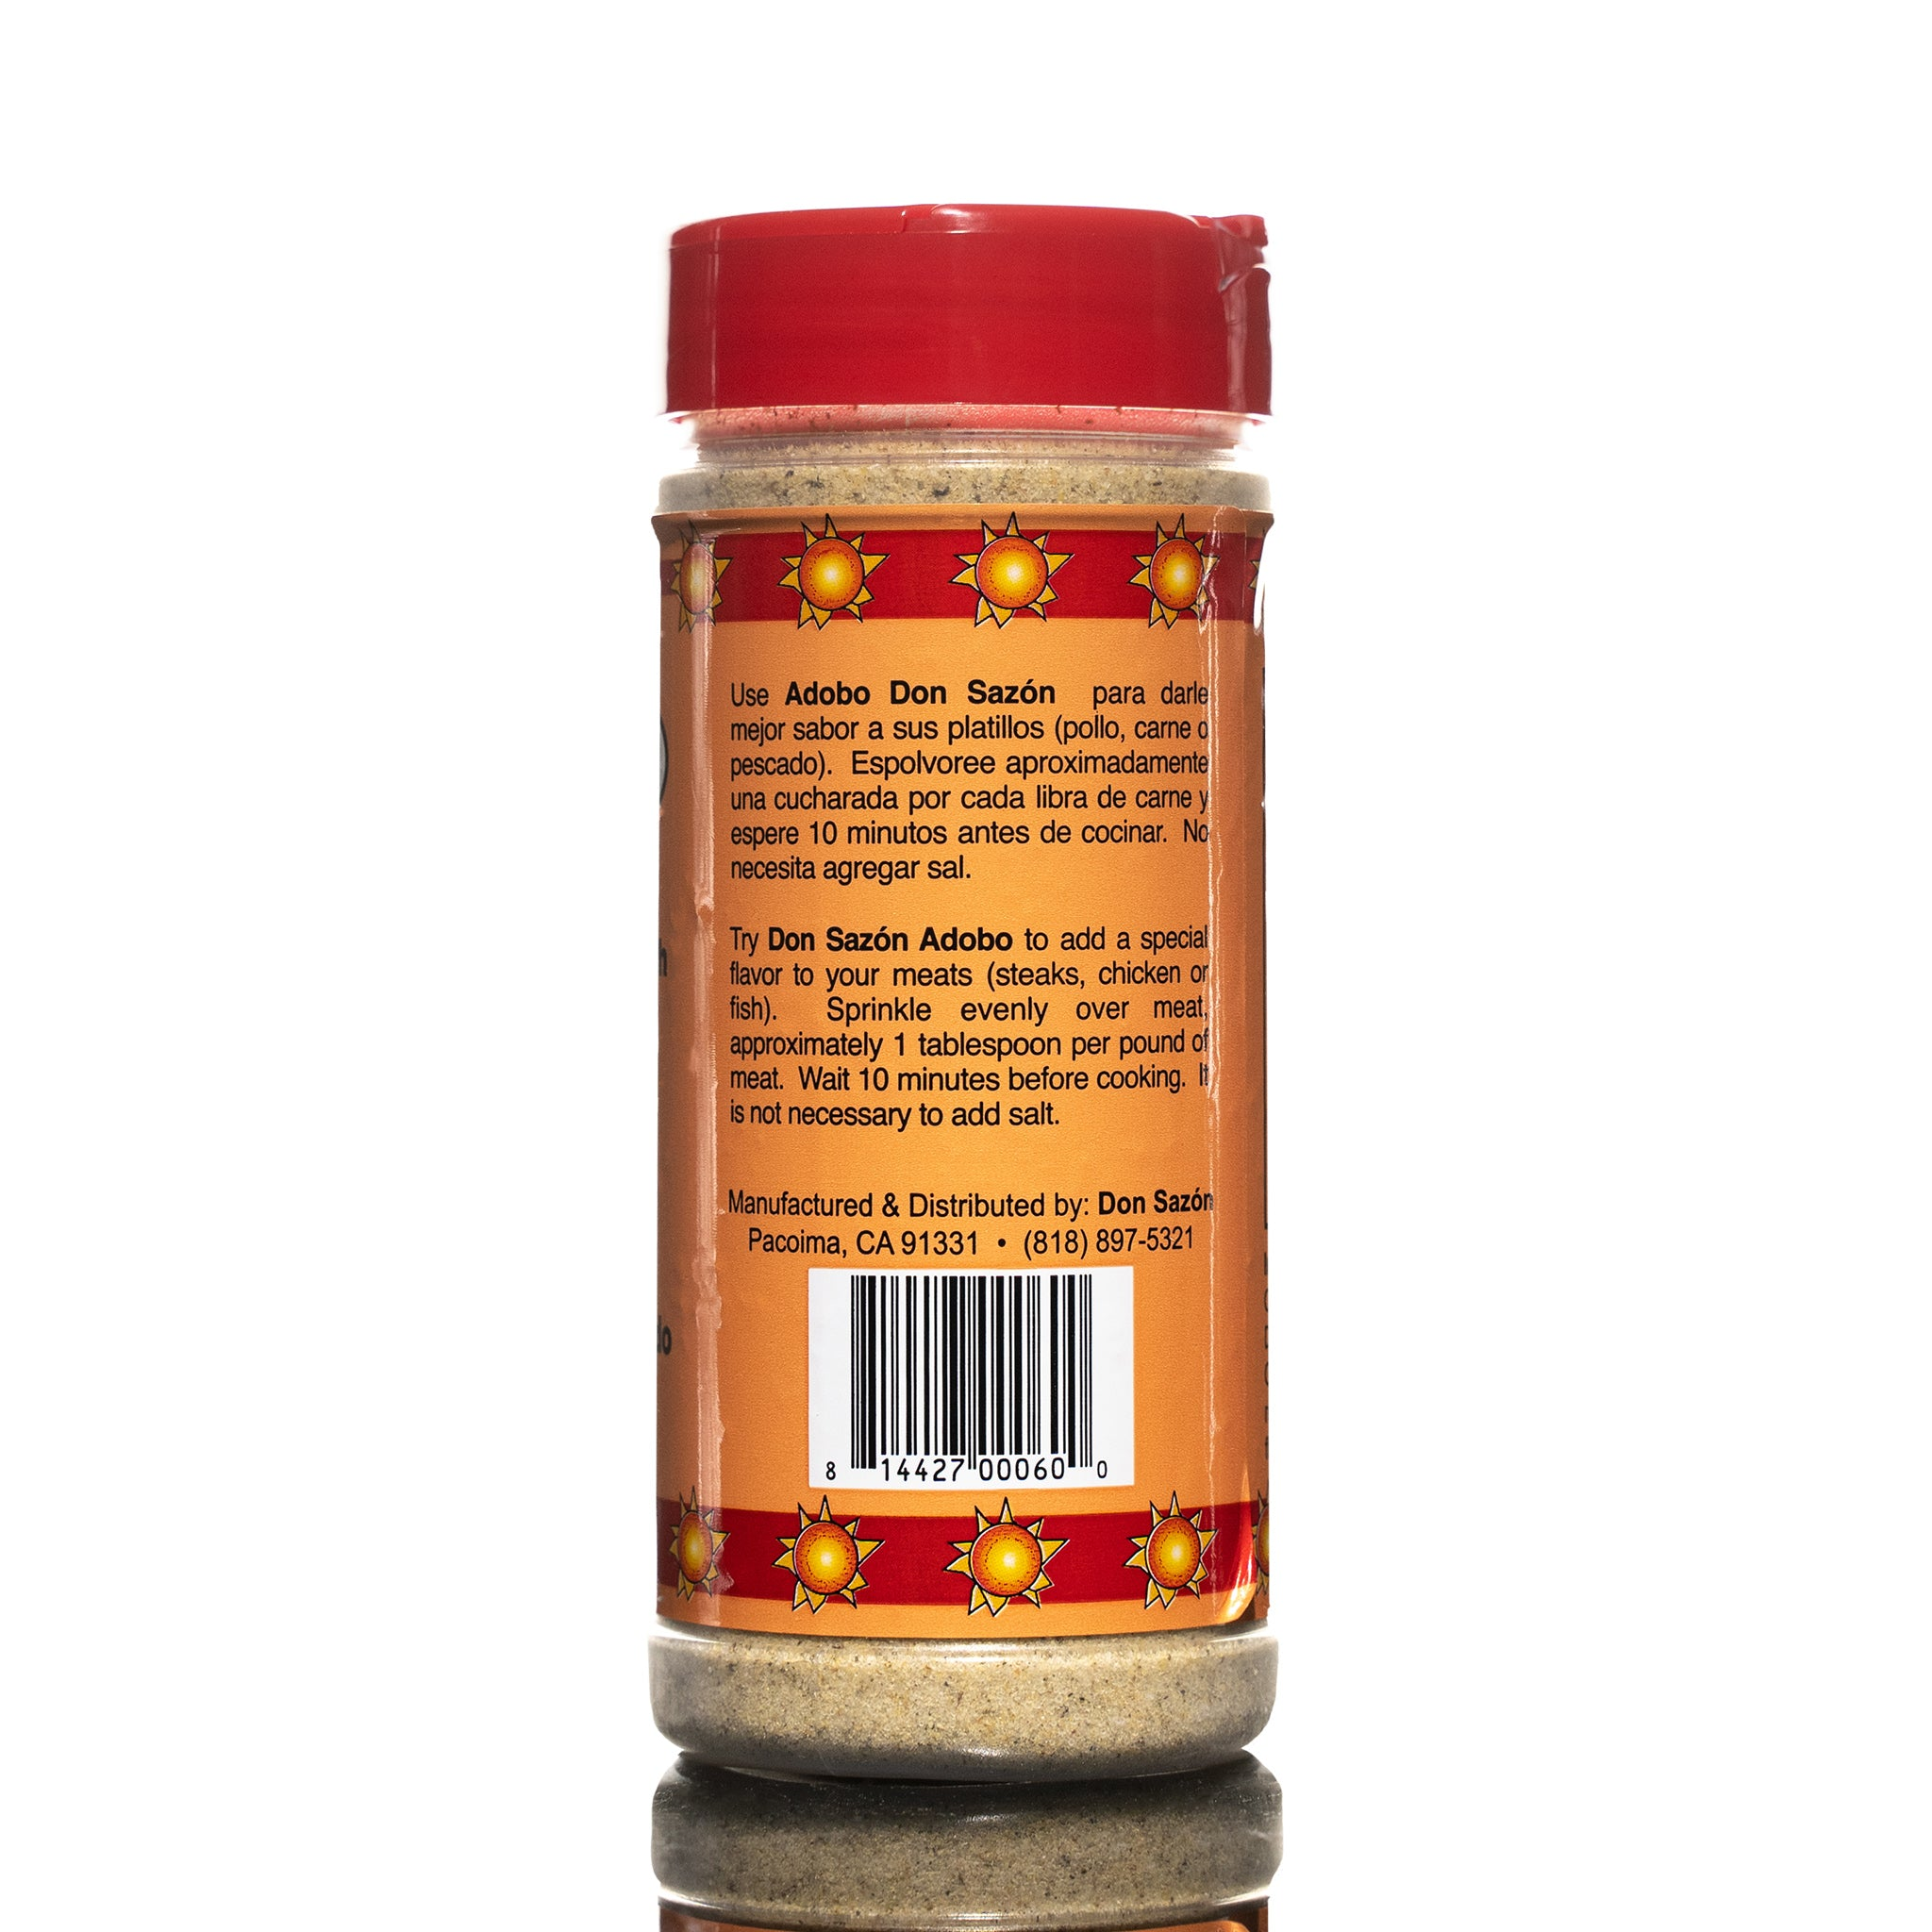 Adobo Seasoning Don Sazon Inc